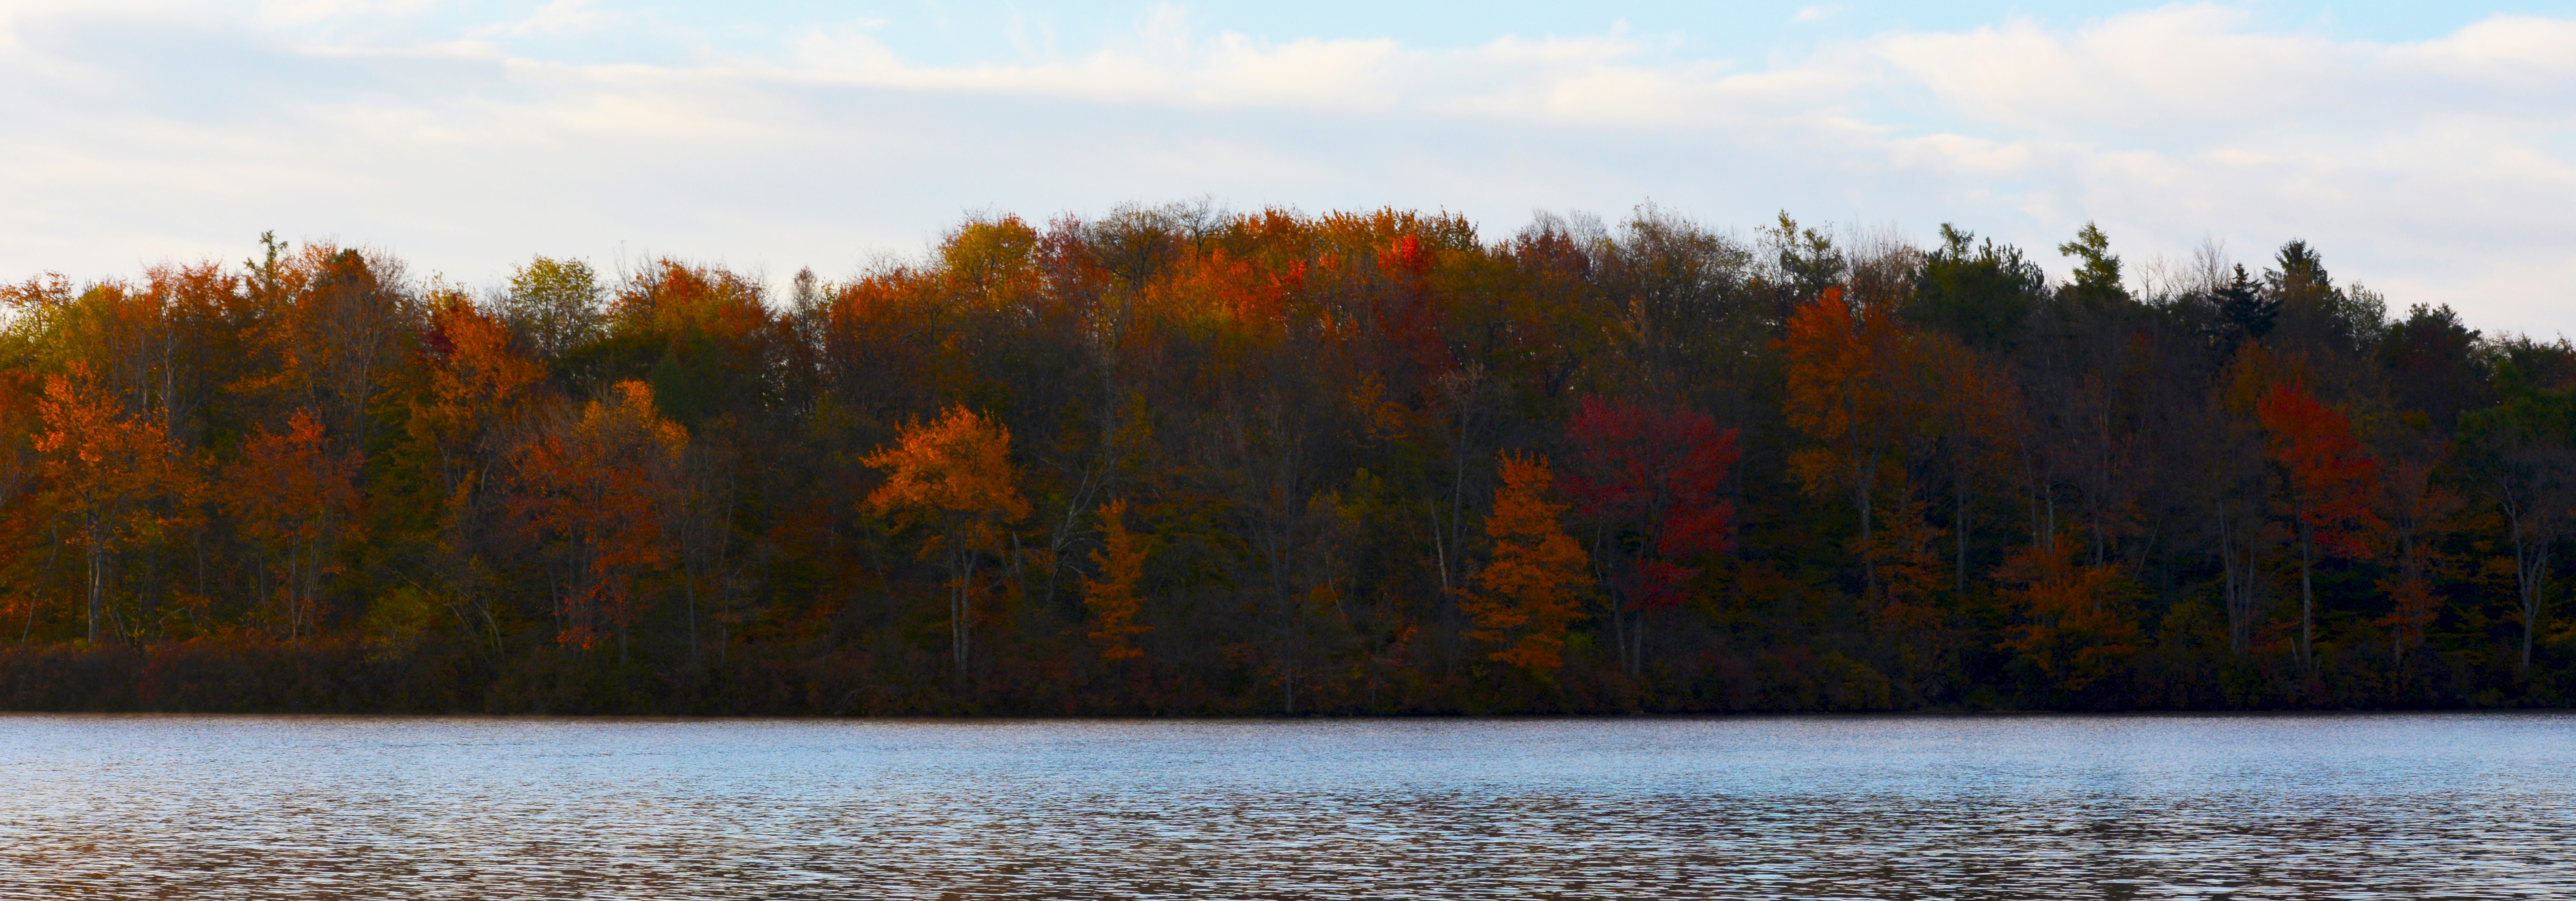 Trees in the fall across a lake